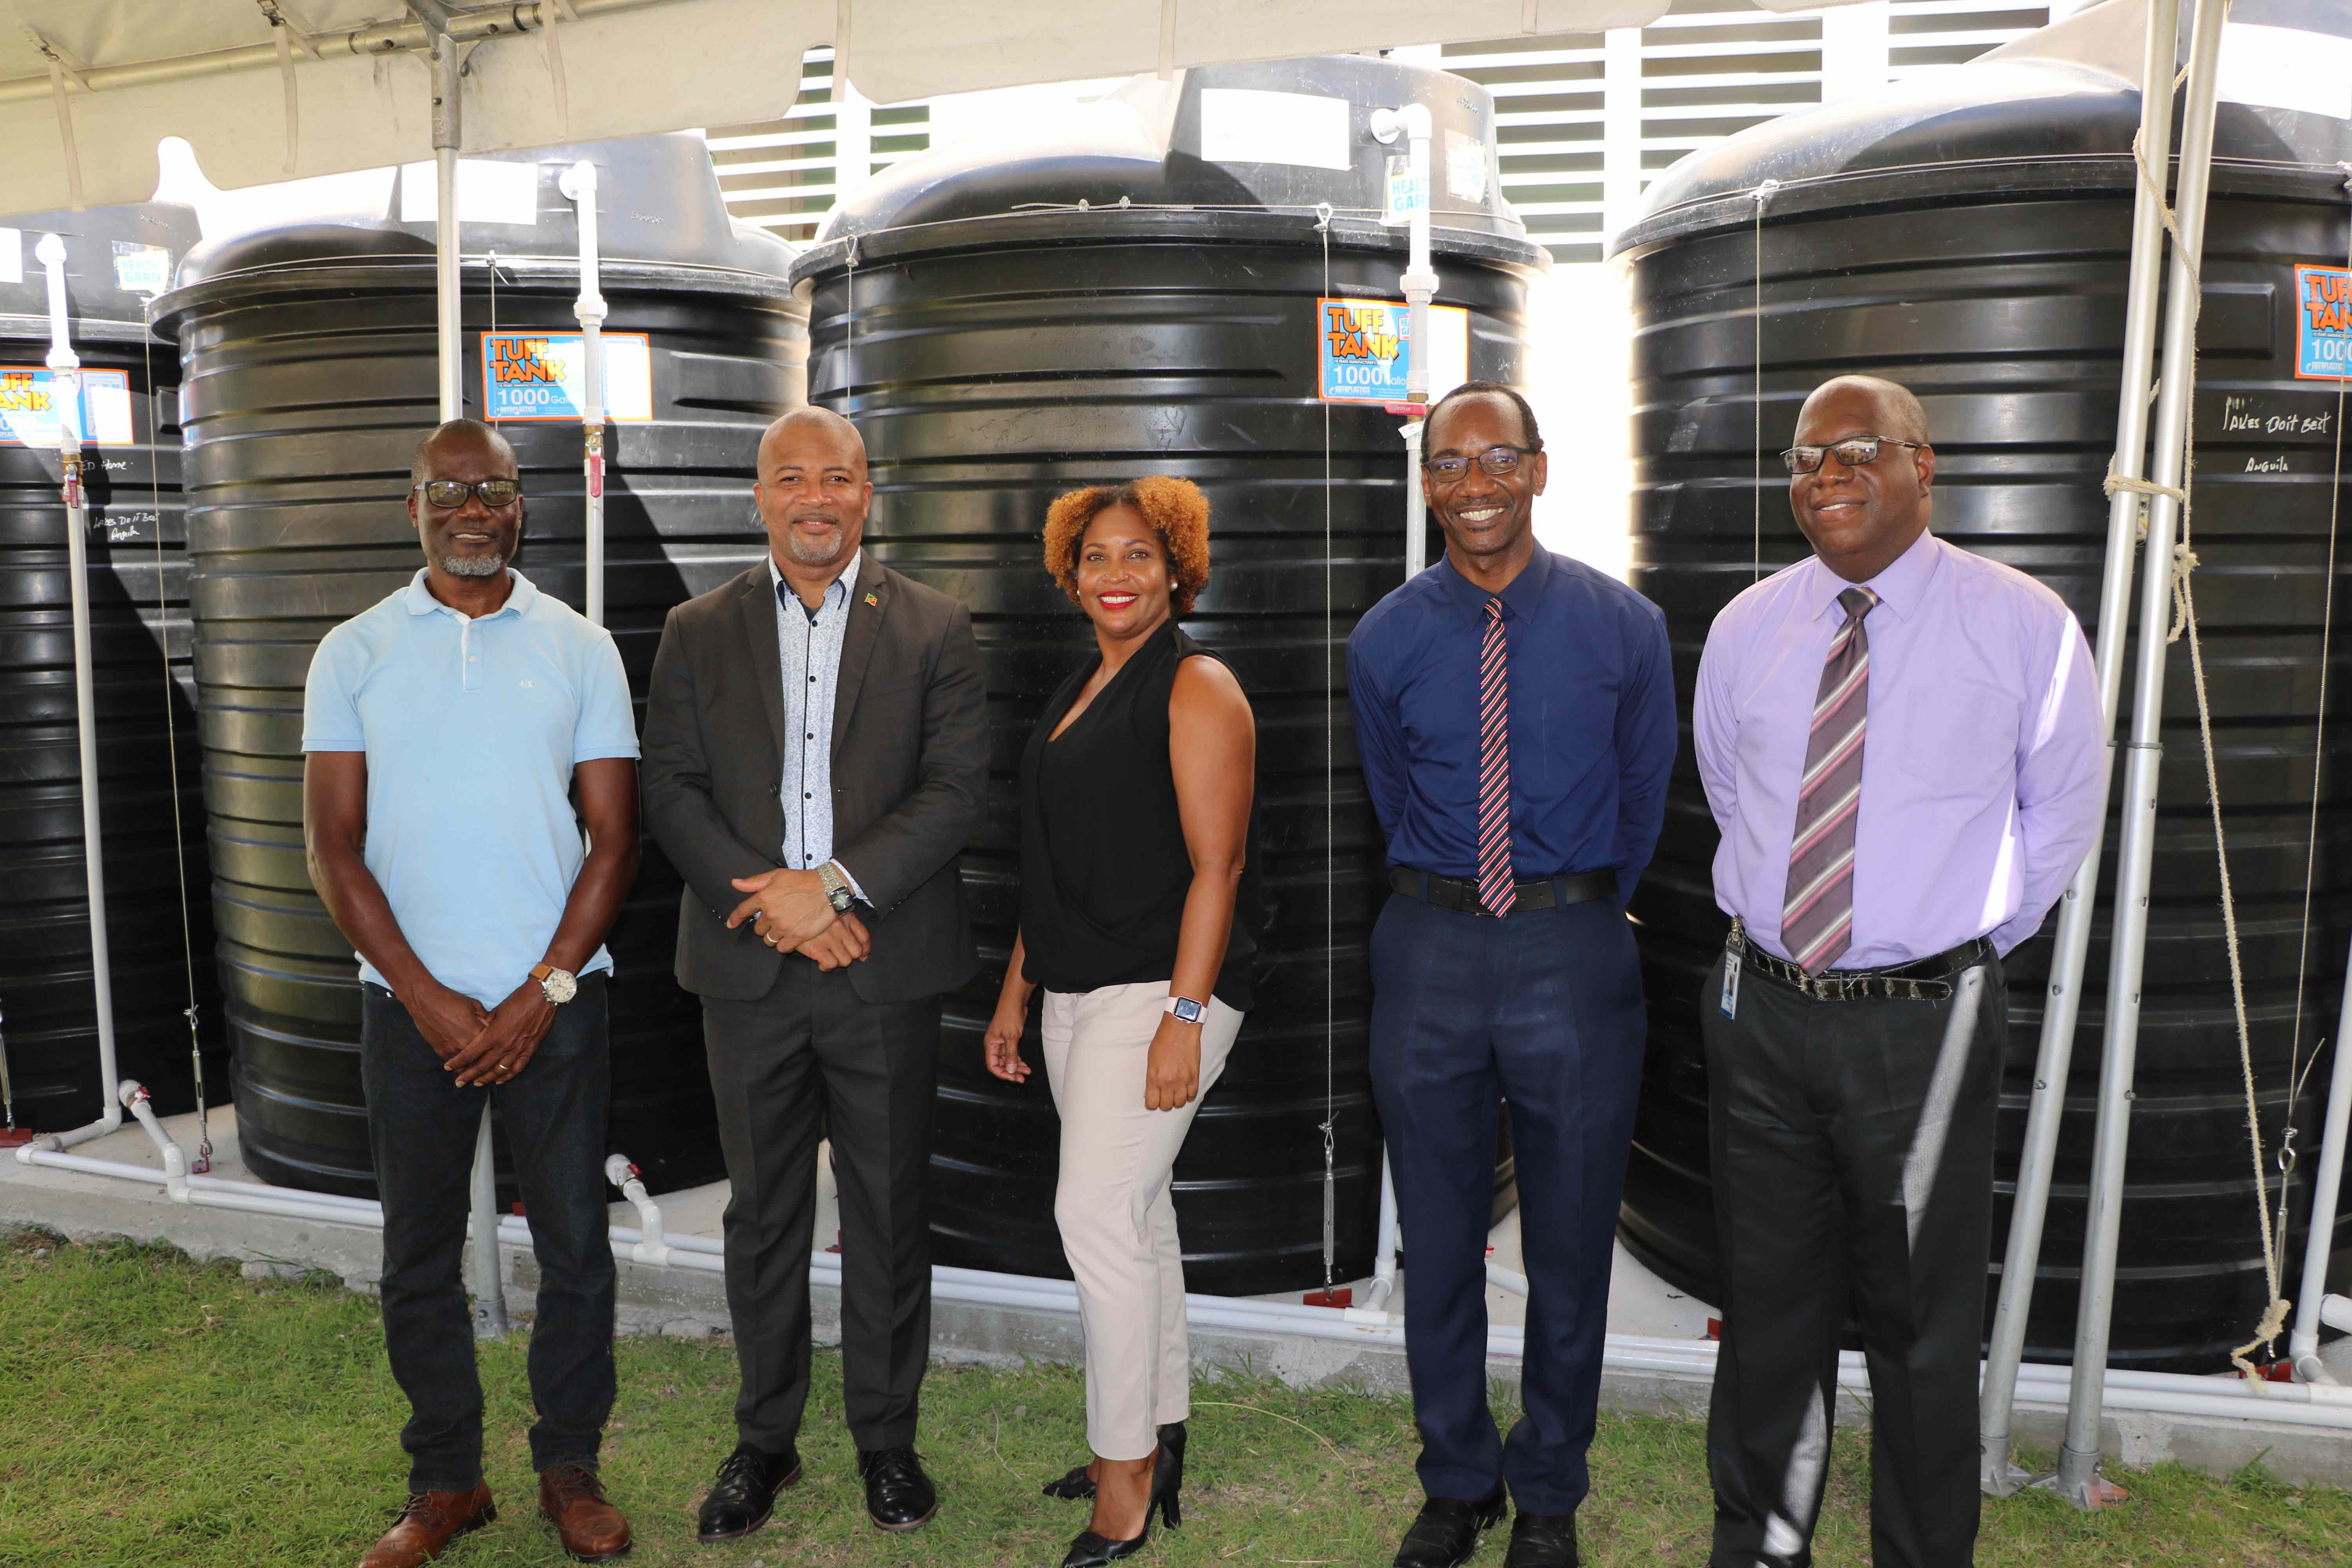 (l-r) Denison Paul of WaterWorks Solutions; Hon. Spencer Brand, Minister of Environment and Water Services in the Nevis Island Administration; Ms. Sharon Rattan, Permanent Secretary in the Ministry of Environment (St. Kitts); Kevin Barrett, Permanent Secretary in the Ministry of Education in the Nevis Island Administration; Juan Williams, Principal of Charlestown Secondary School at a ceremony to commission a water storage system at the Charlestown Secondary School on October 20, 2020